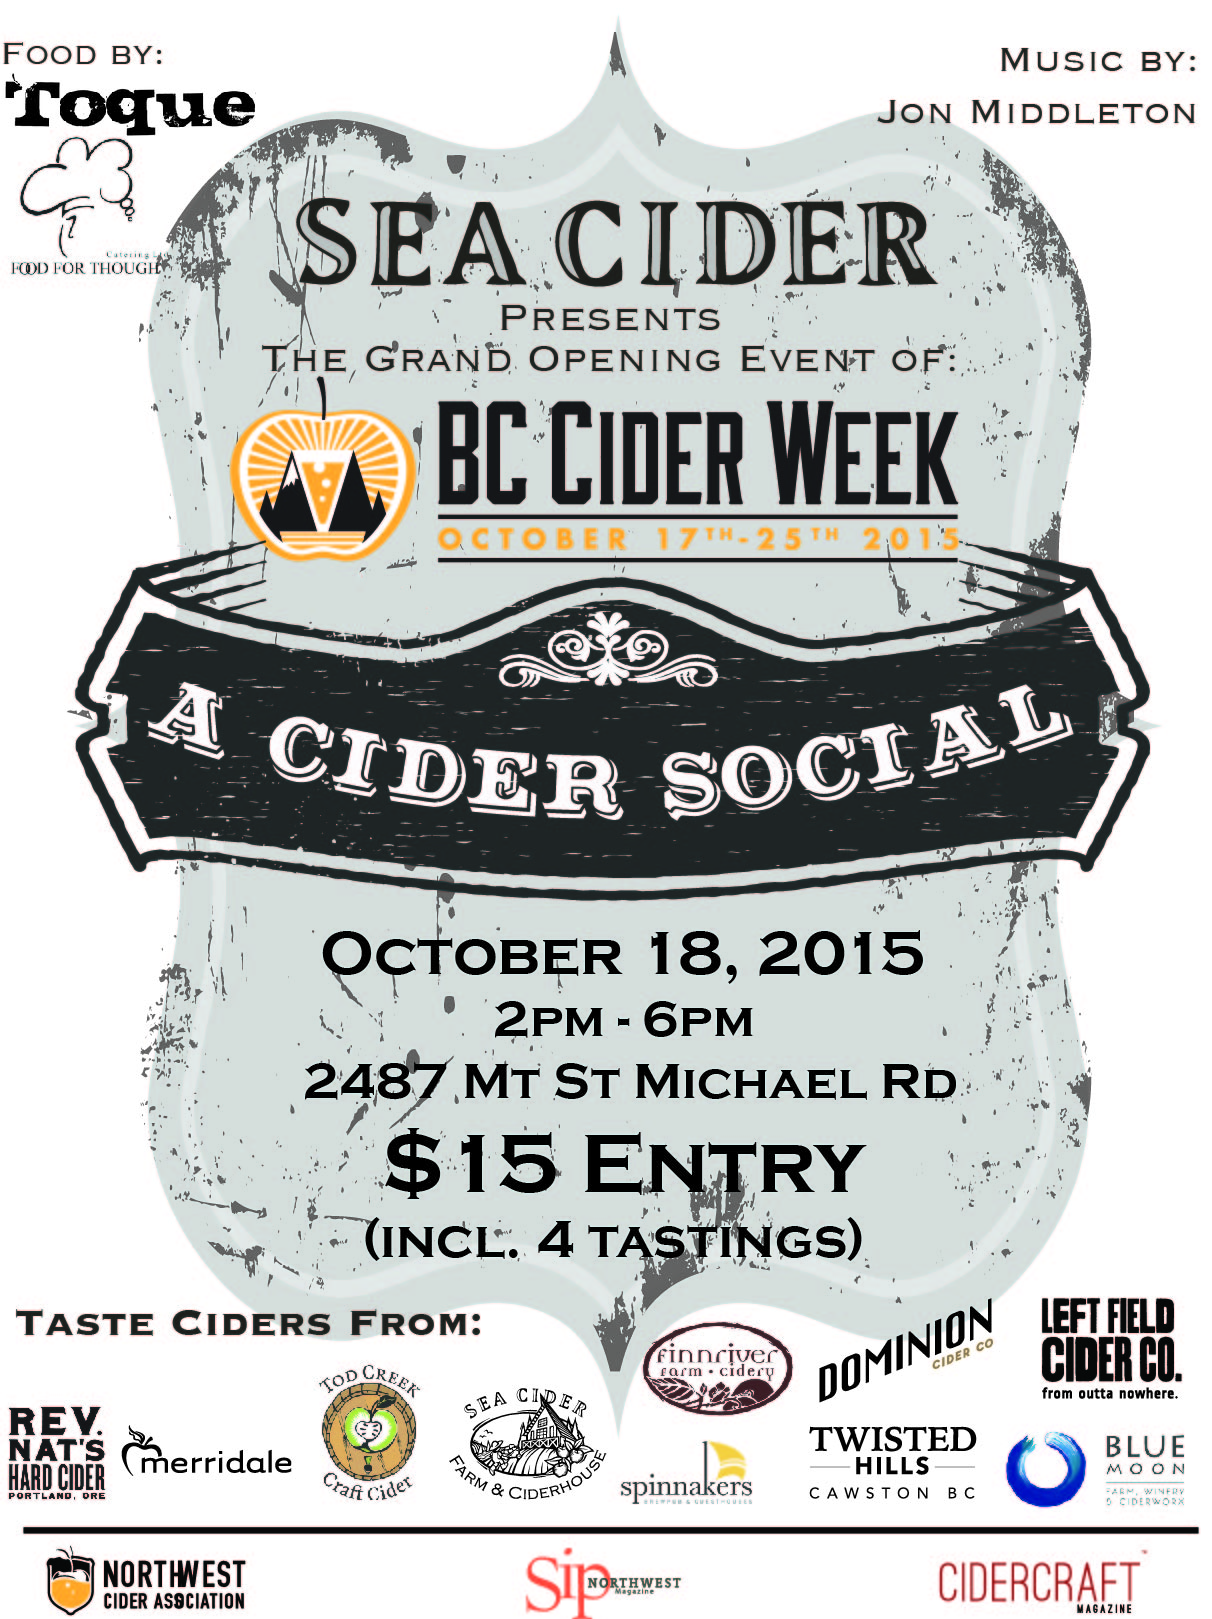 Cider Social Event Poster 11x17